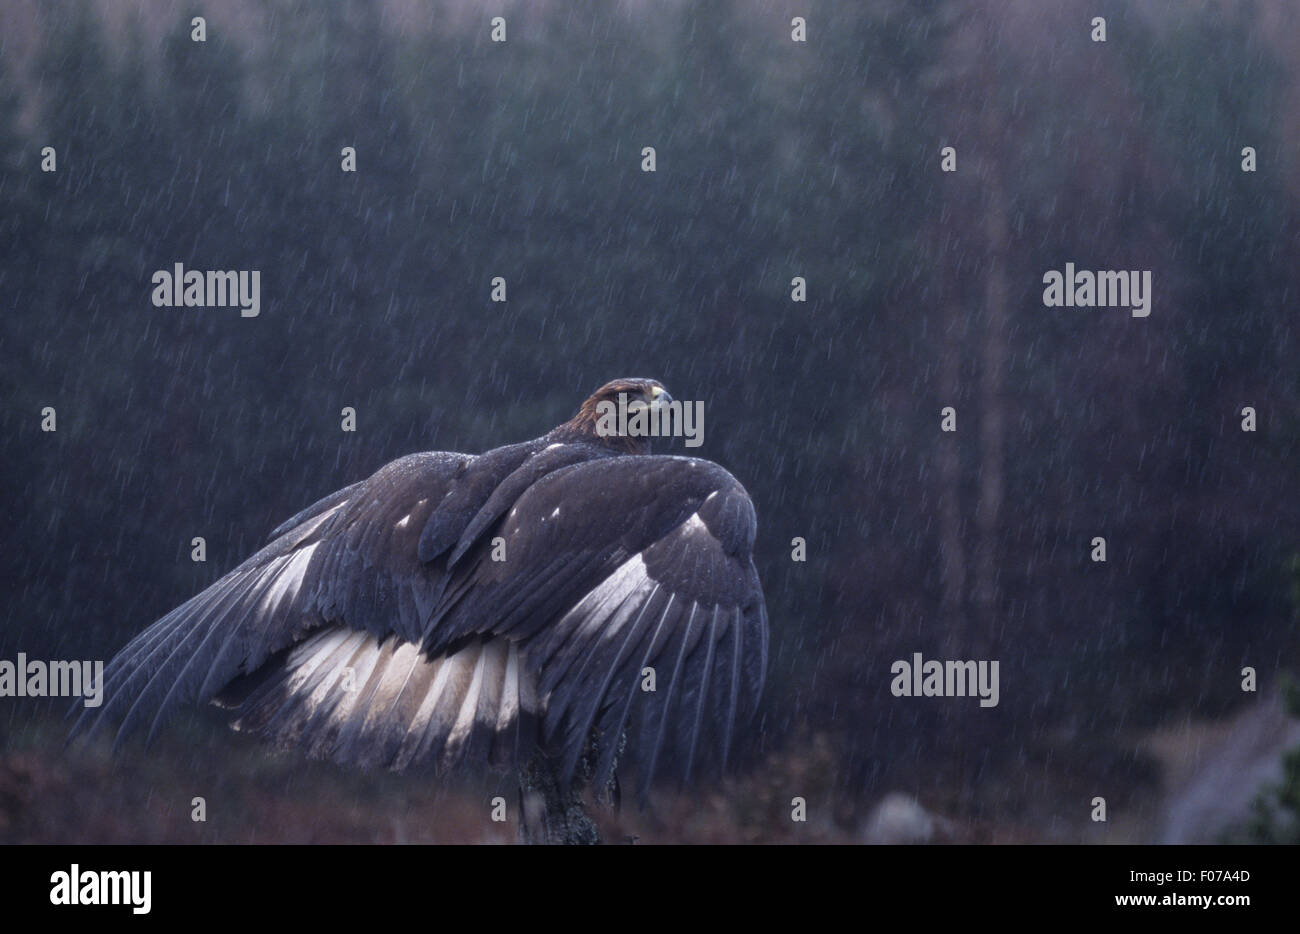 Golden Eagle Captive wet raining taken from behind looking right wings open showing white tail perched on tree trunk - Stock Image